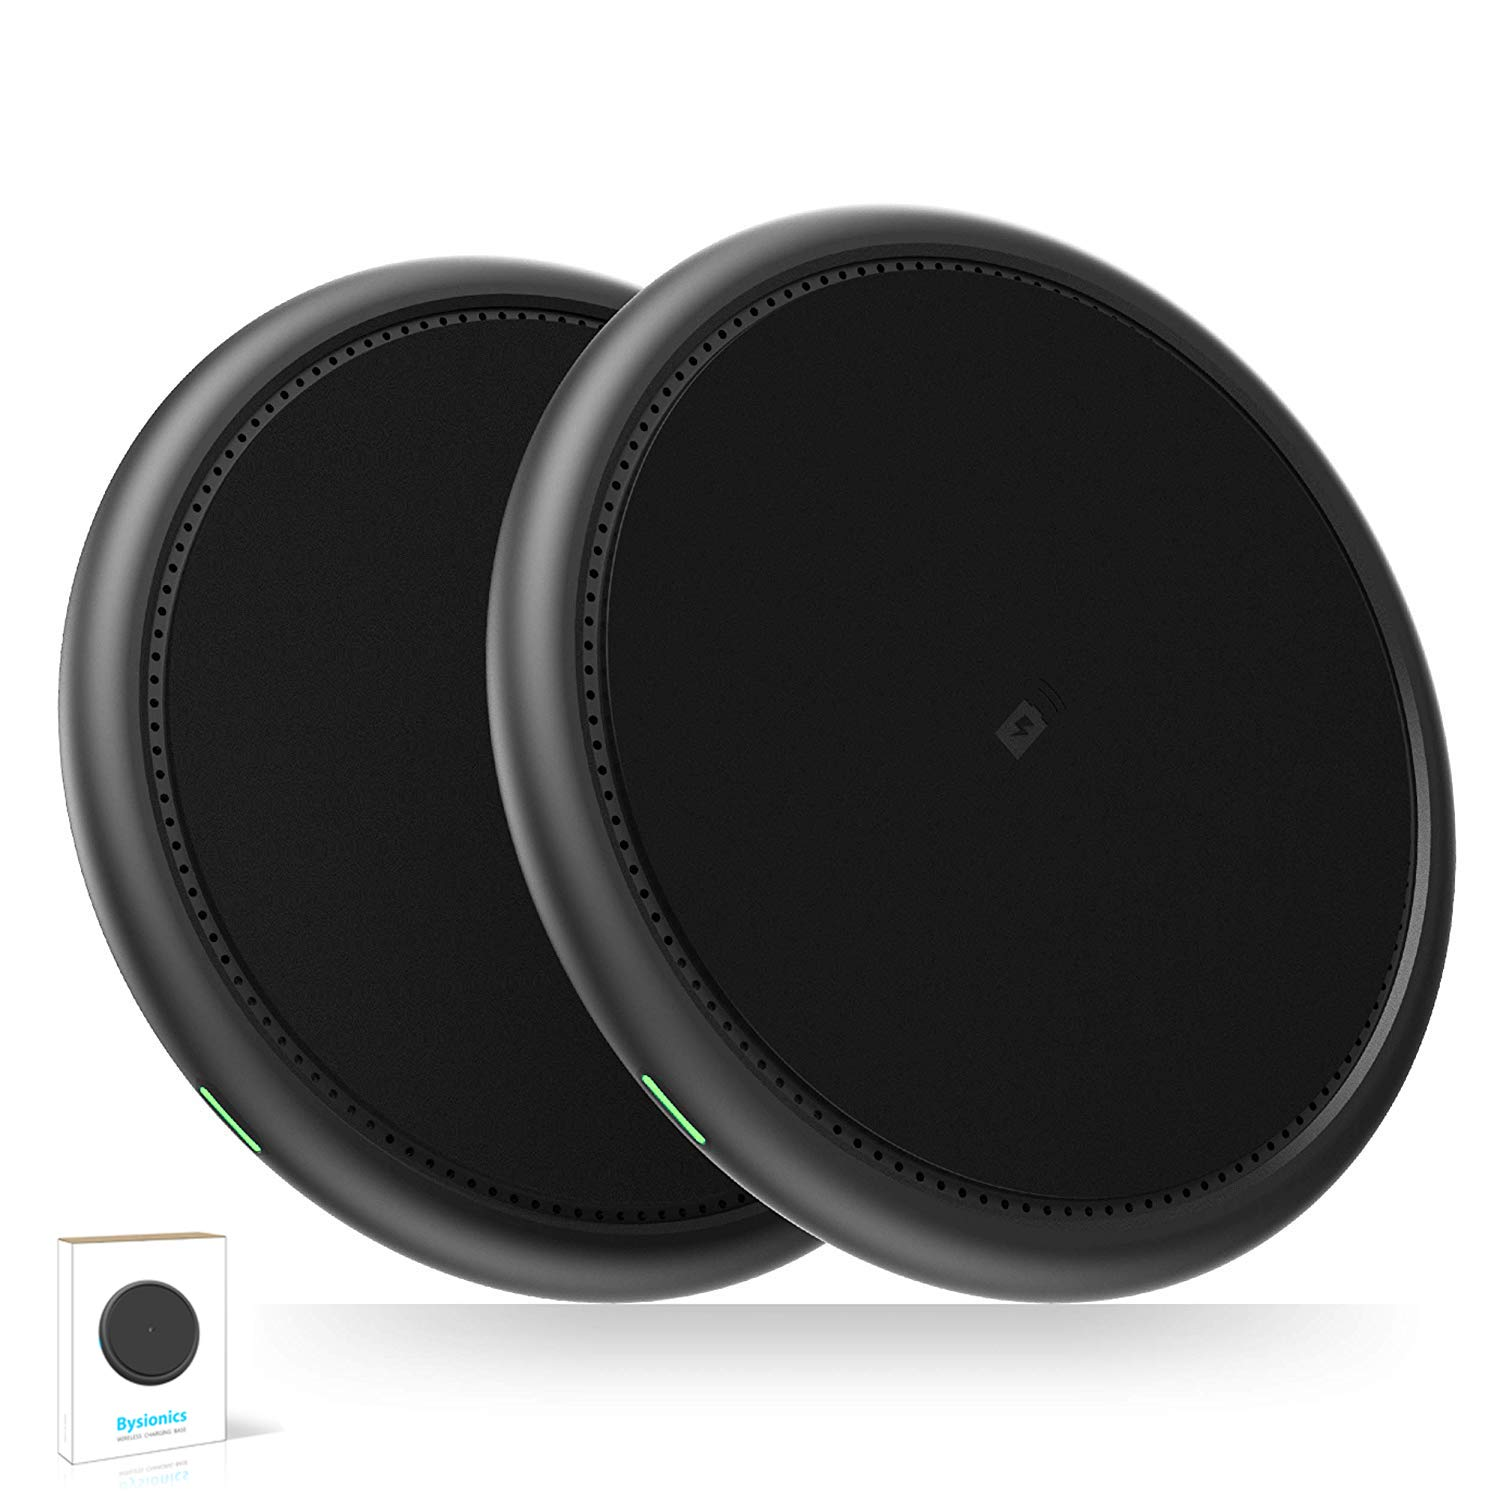 Bysionics Wireless Charger,2 Pack 10W Wireless Charging Compatible with iPhone Xs/XS MAX/XR/X/8/8Plus,Galaxy S7/S8/S9, and More [No AC Adapter] (Black) by Bysionics